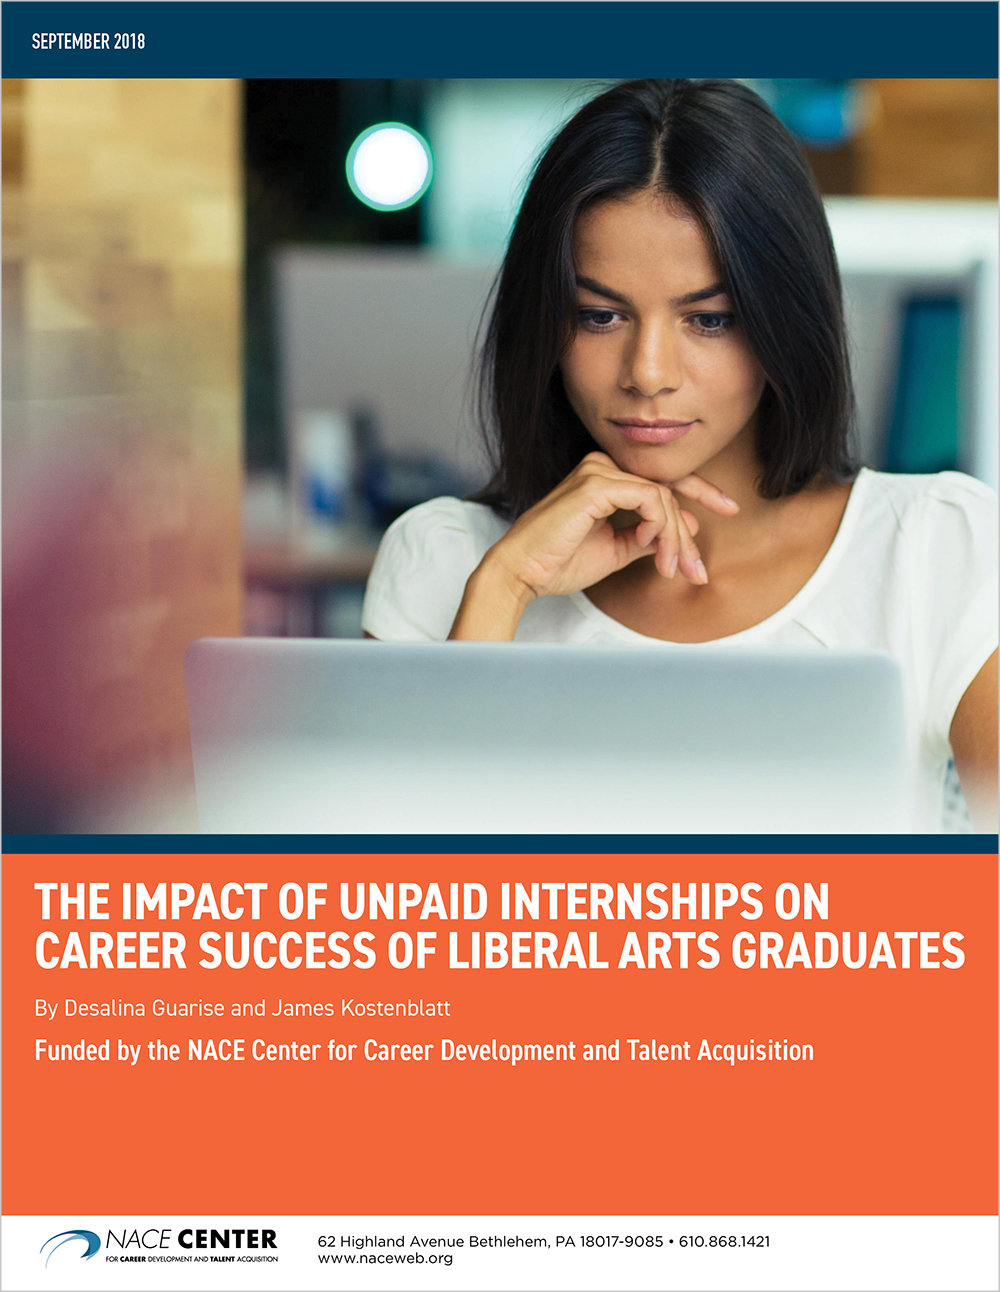 Unpaid Internships and Early Career Outcomes